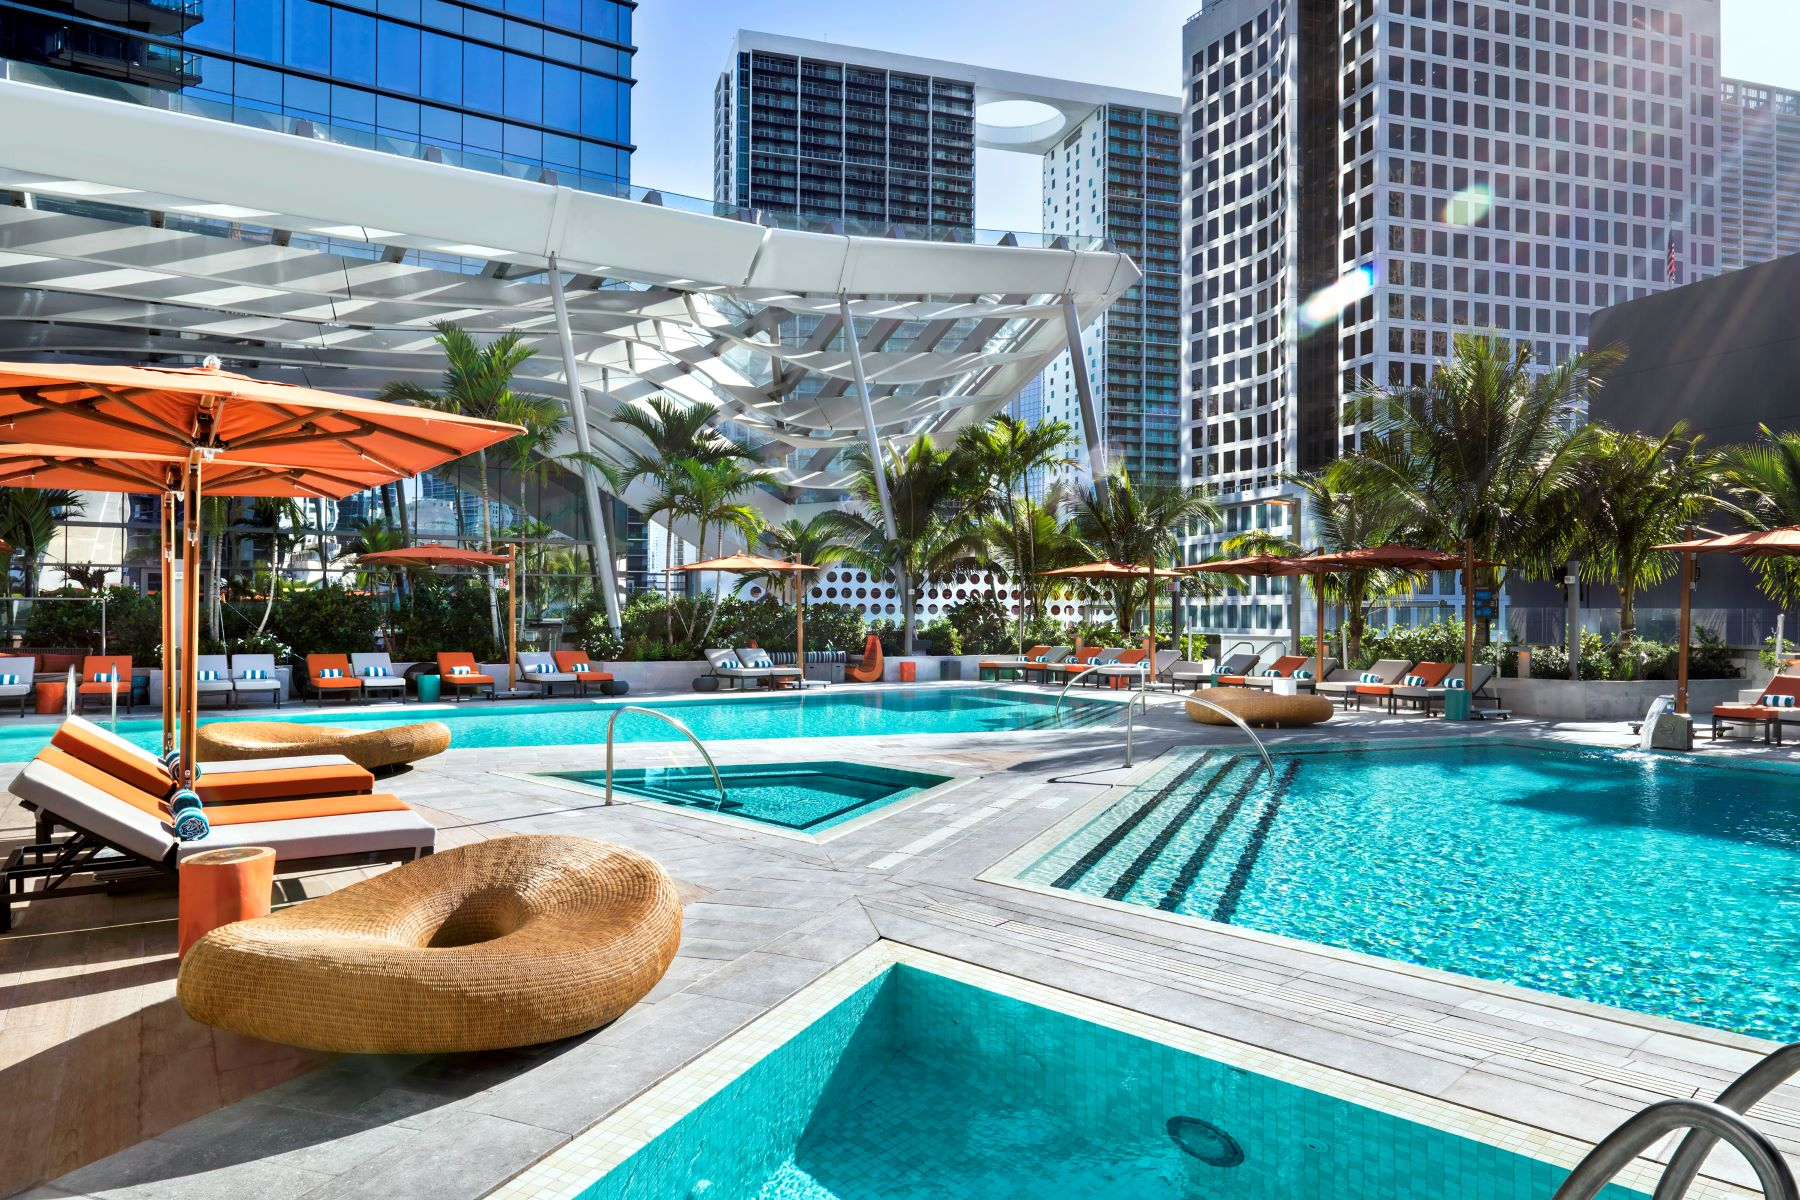 شقة بعمارة للـ Rent في 788 Brickell Plaza 788 Brickell Plaza 1107 Miami, Florida 33131 United States